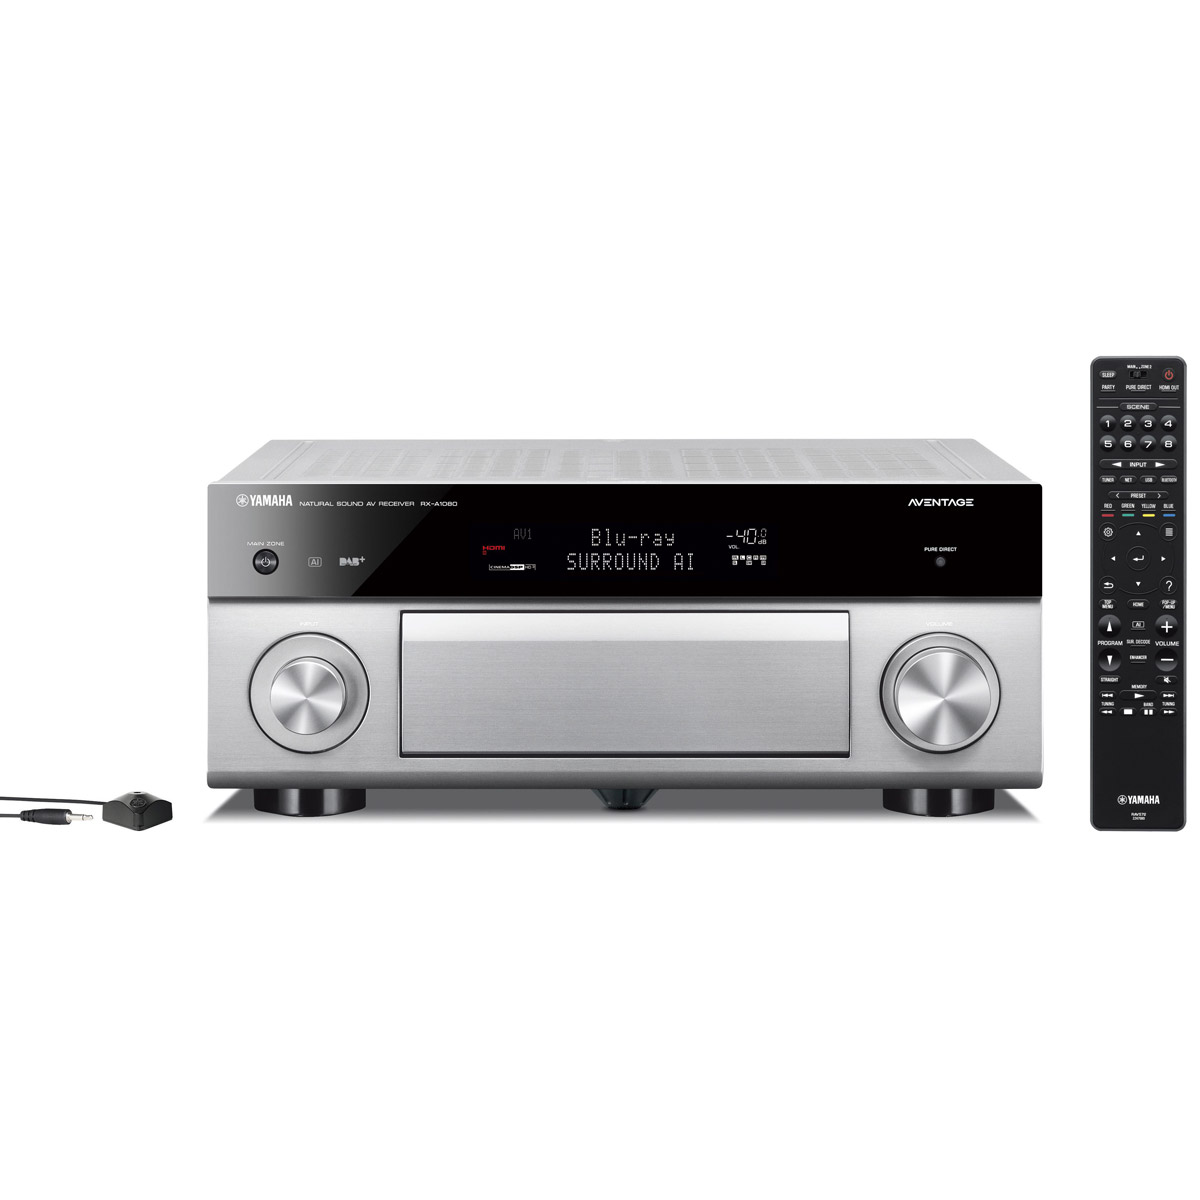 Ampli home cinéma Yamaha RX-A1080 Titane Ampli-tuner Home Cinéma 7.2 3D 110W/canal - Dolby Atmos/DTS:X - 7x HDMI HDCP 2.2 Ultra HD 4K - Wi-Fi/Bluetooth/DLNA/AirPlay - MusicCast/MusicCast Surround - A.R.T. Wedge - Calibration YPAO RSC